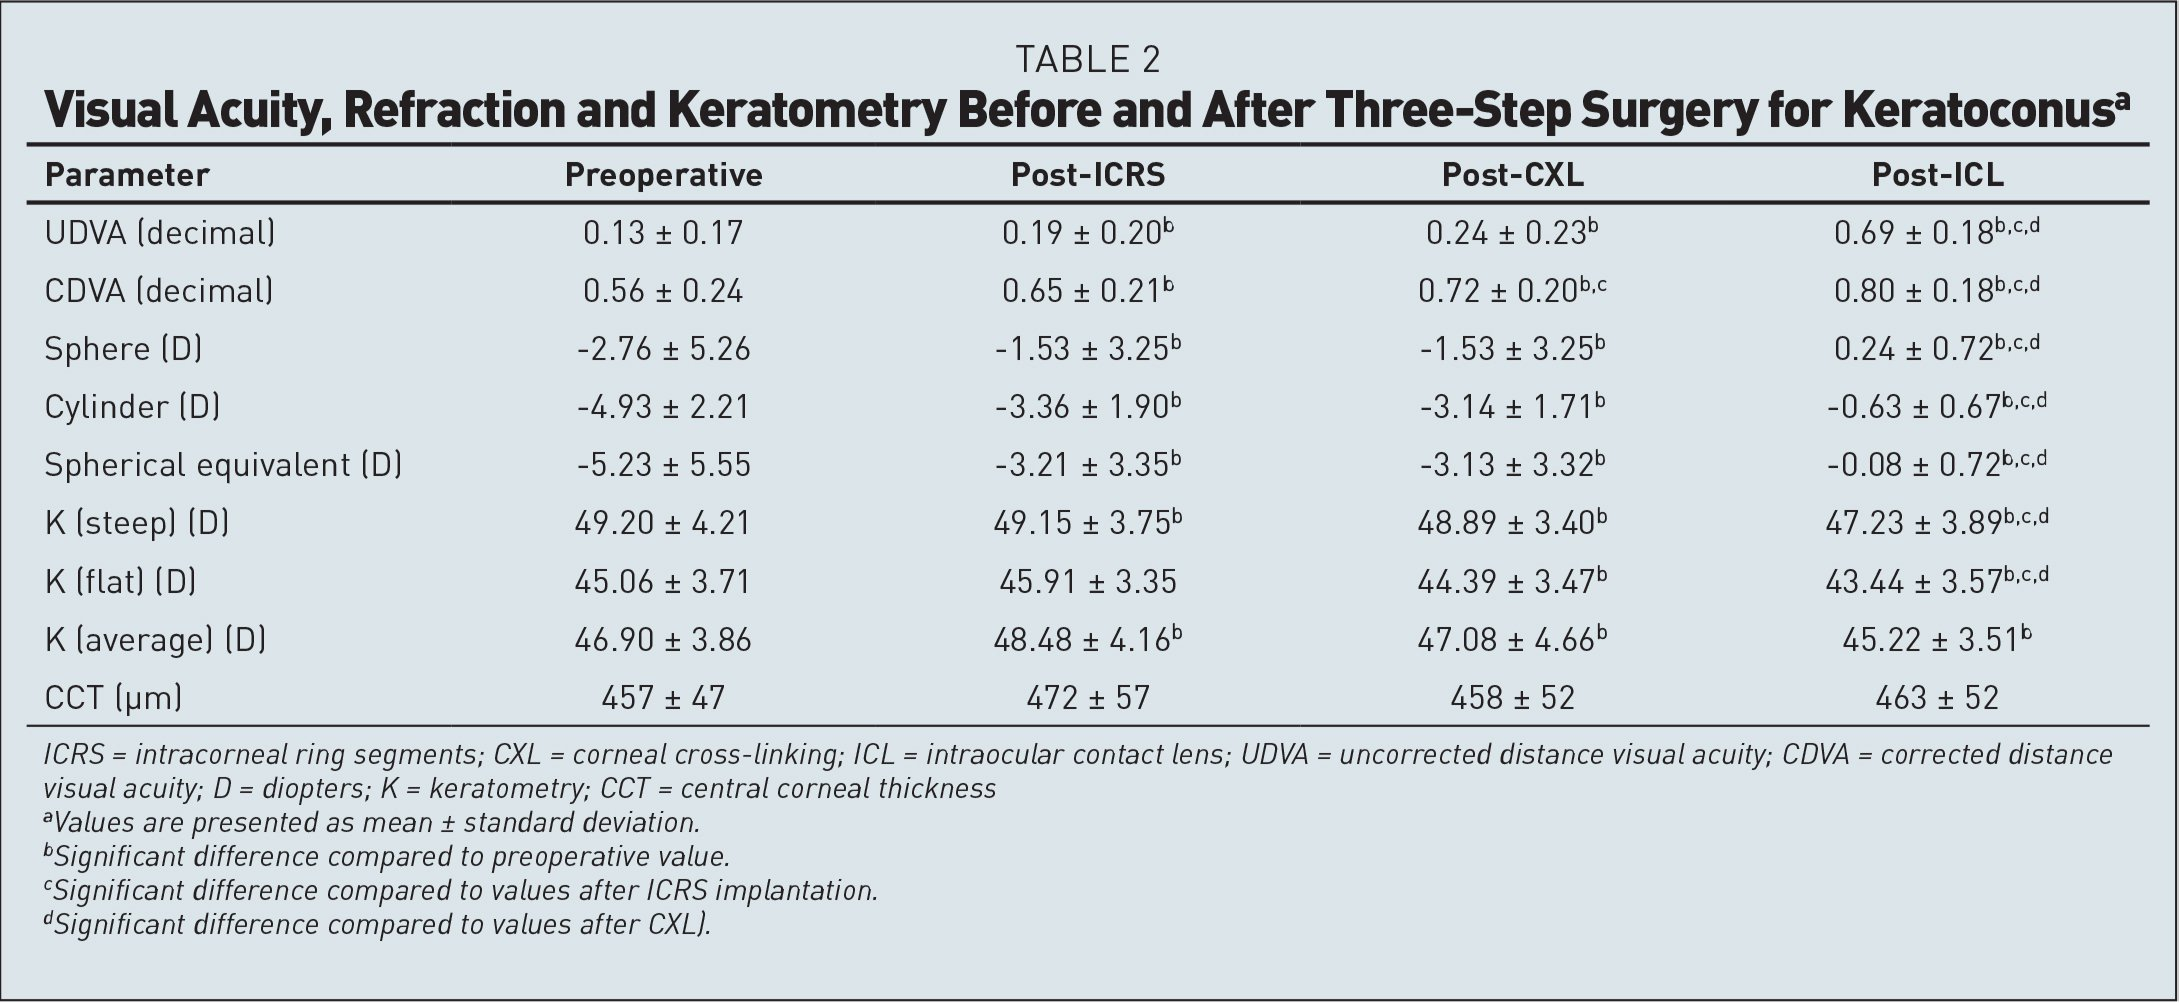 Visual Acuity, Refraction and Keratometry Before and After Three-Step Surgery for Keratoconusa